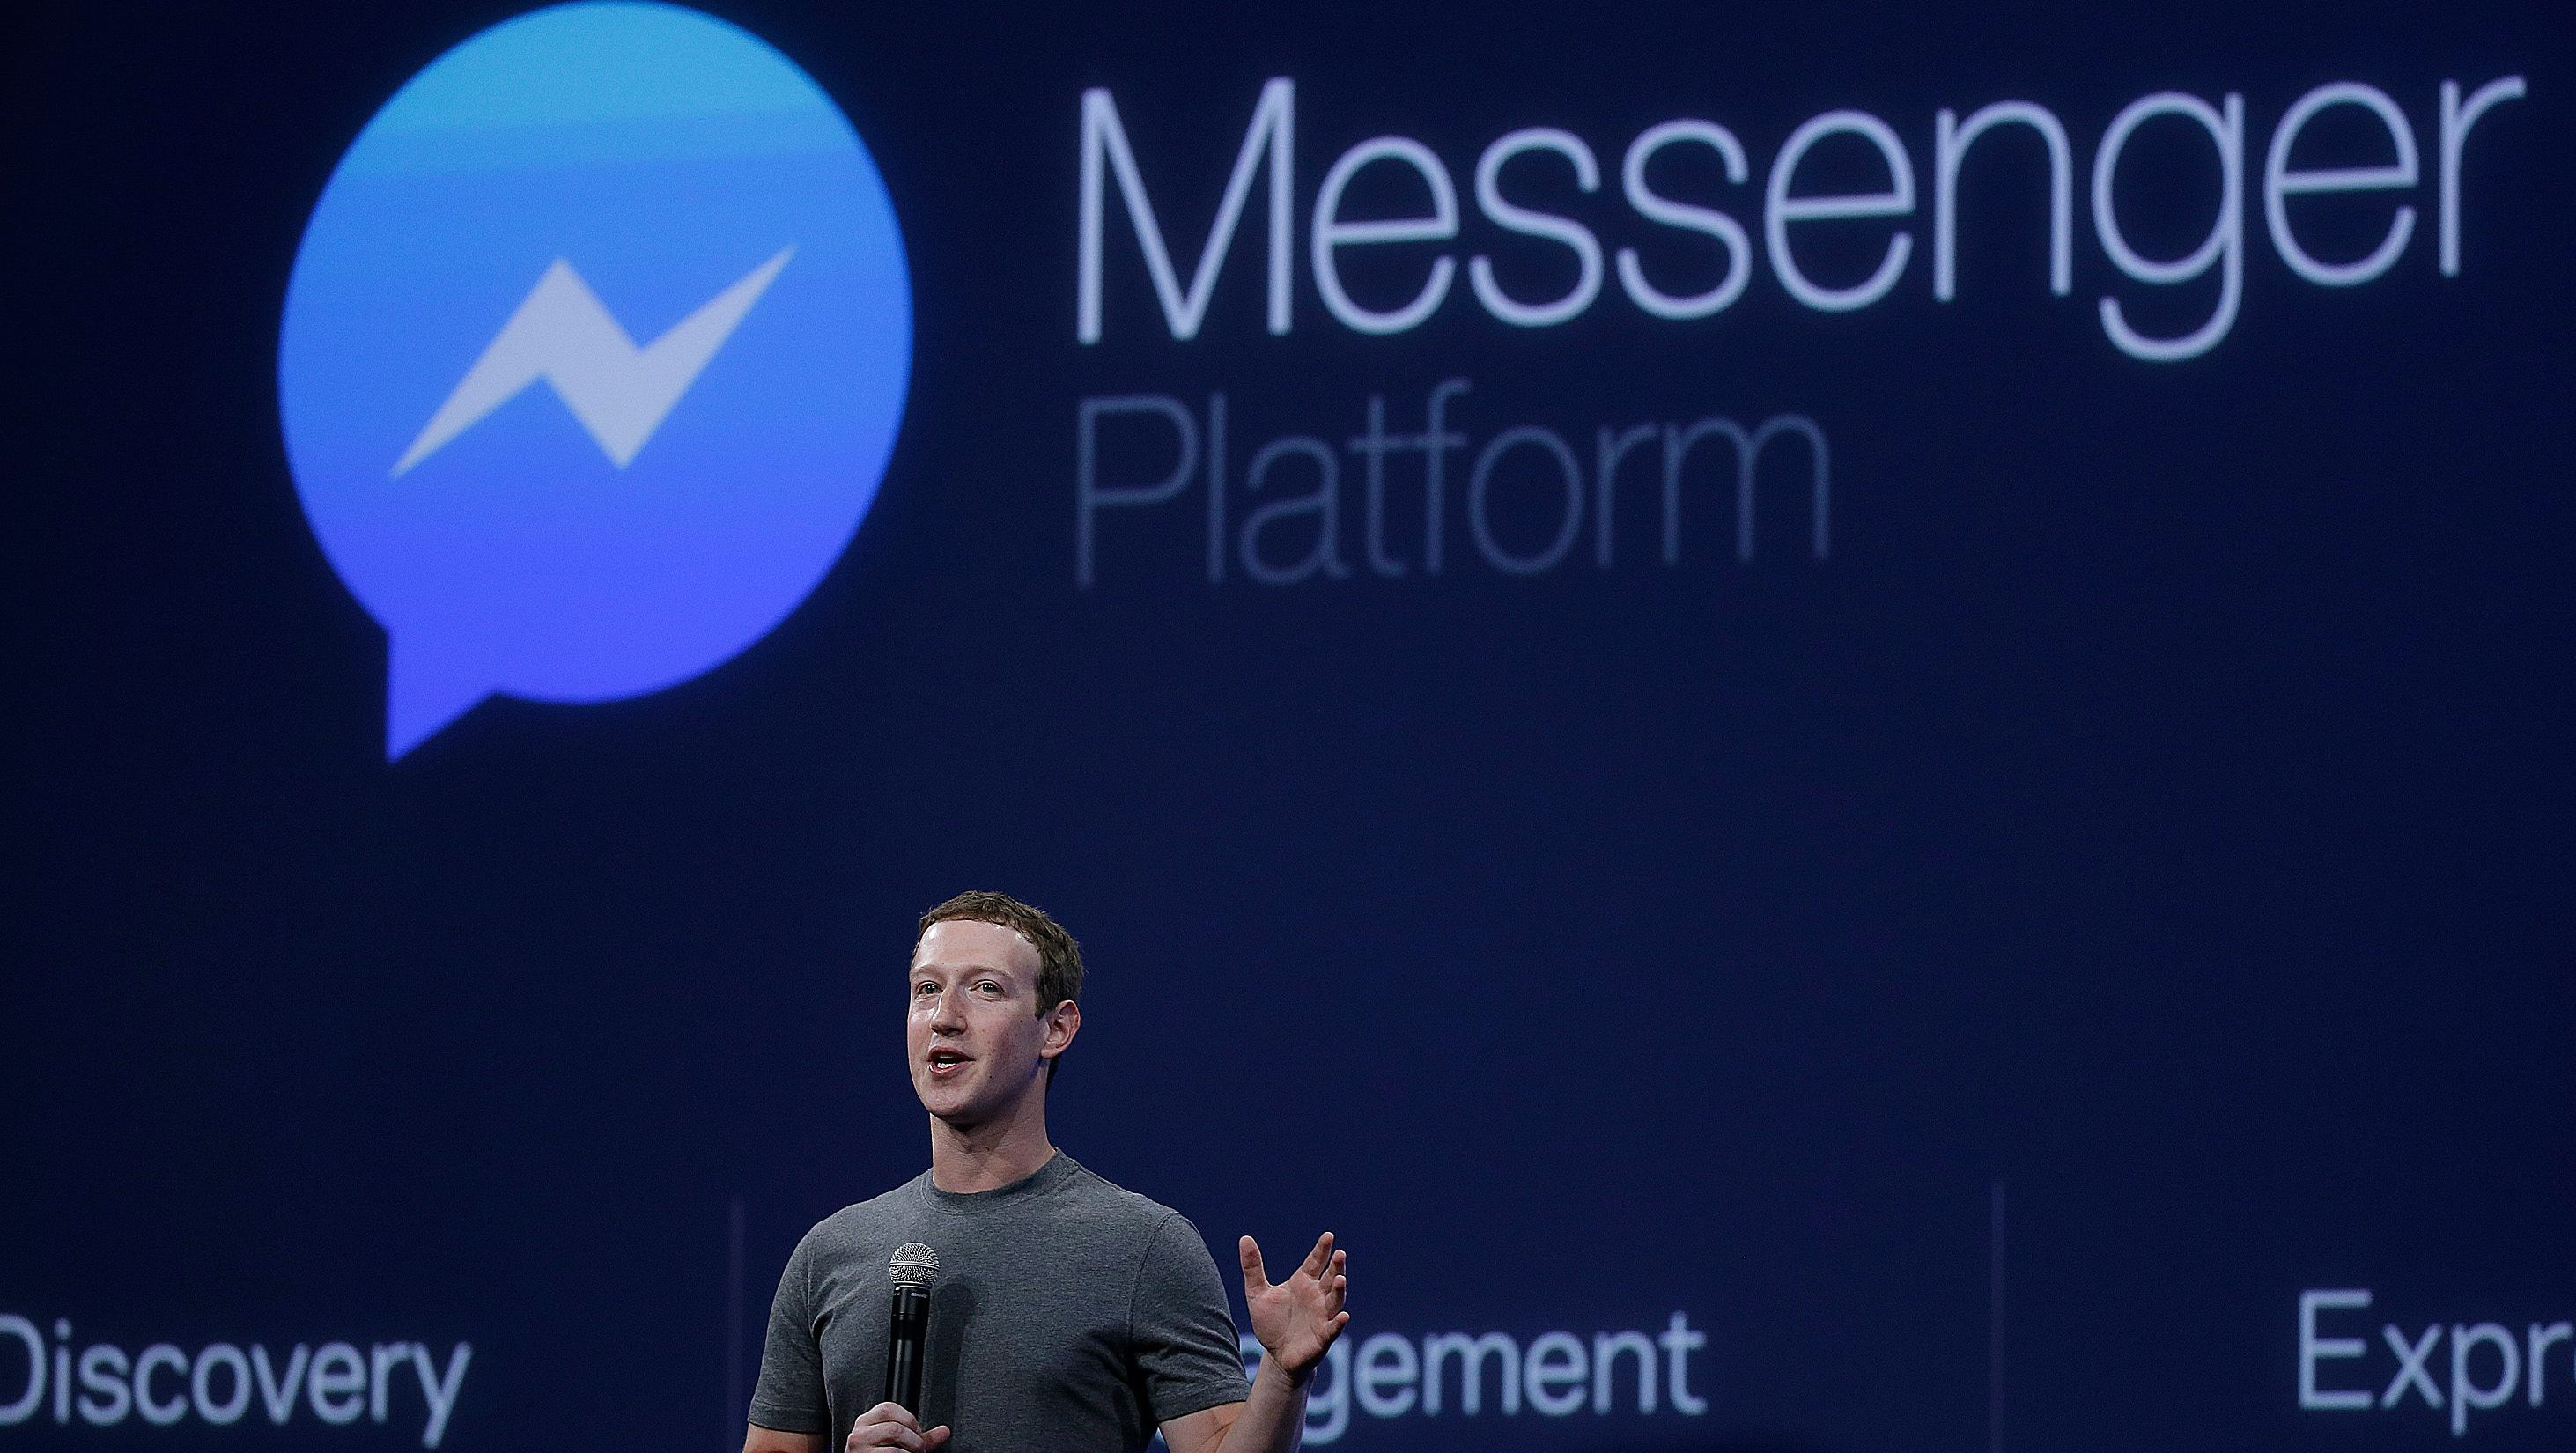 Your Facebook Messenger chats may soon get autoplaying video ads